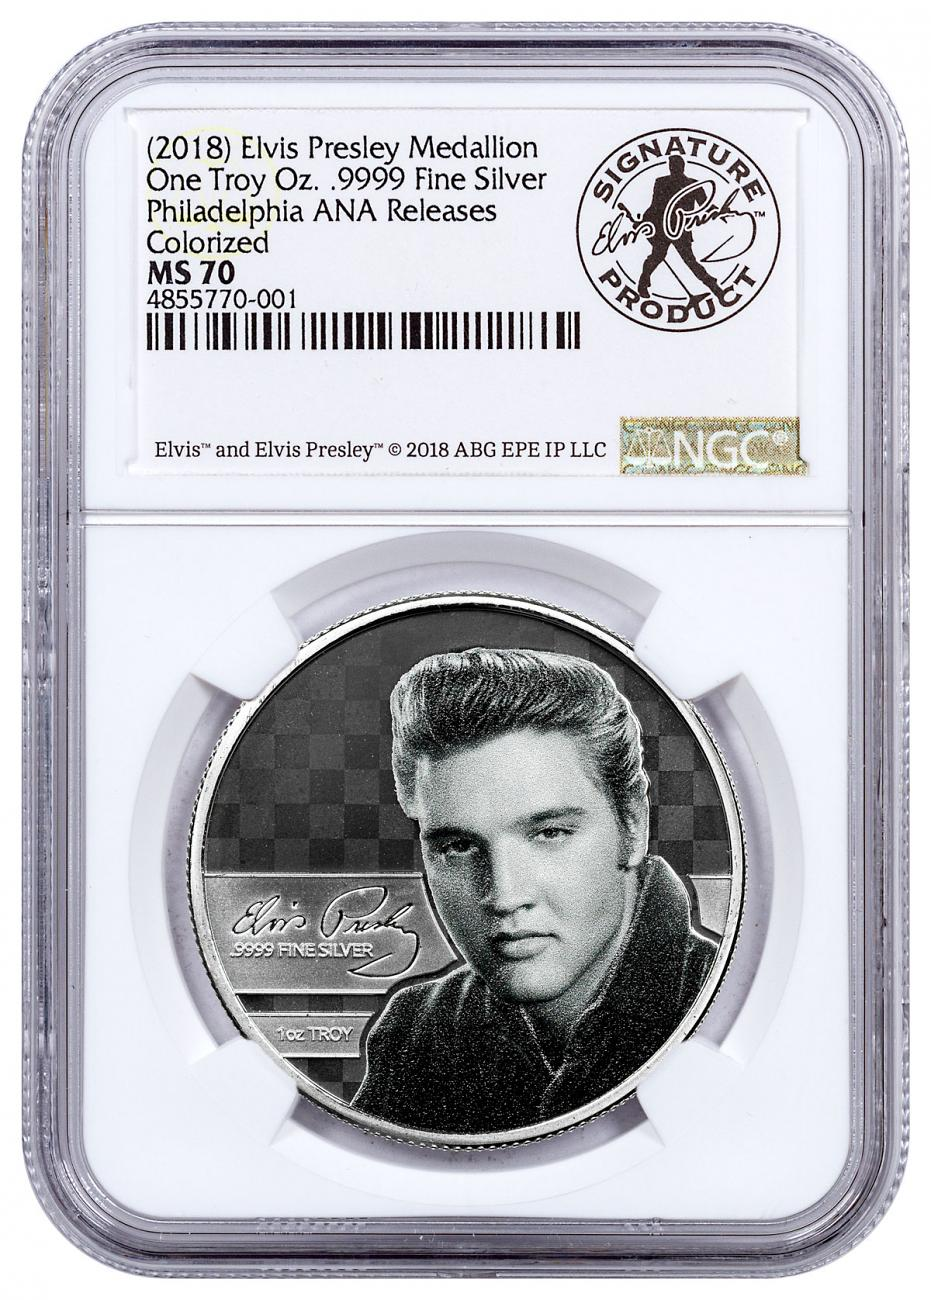 (2018) Elvis Presley 1 oz Silver Colorized Prooflike Medal ANA Show Releases NGC MS70 Elvis Signed Dual Label